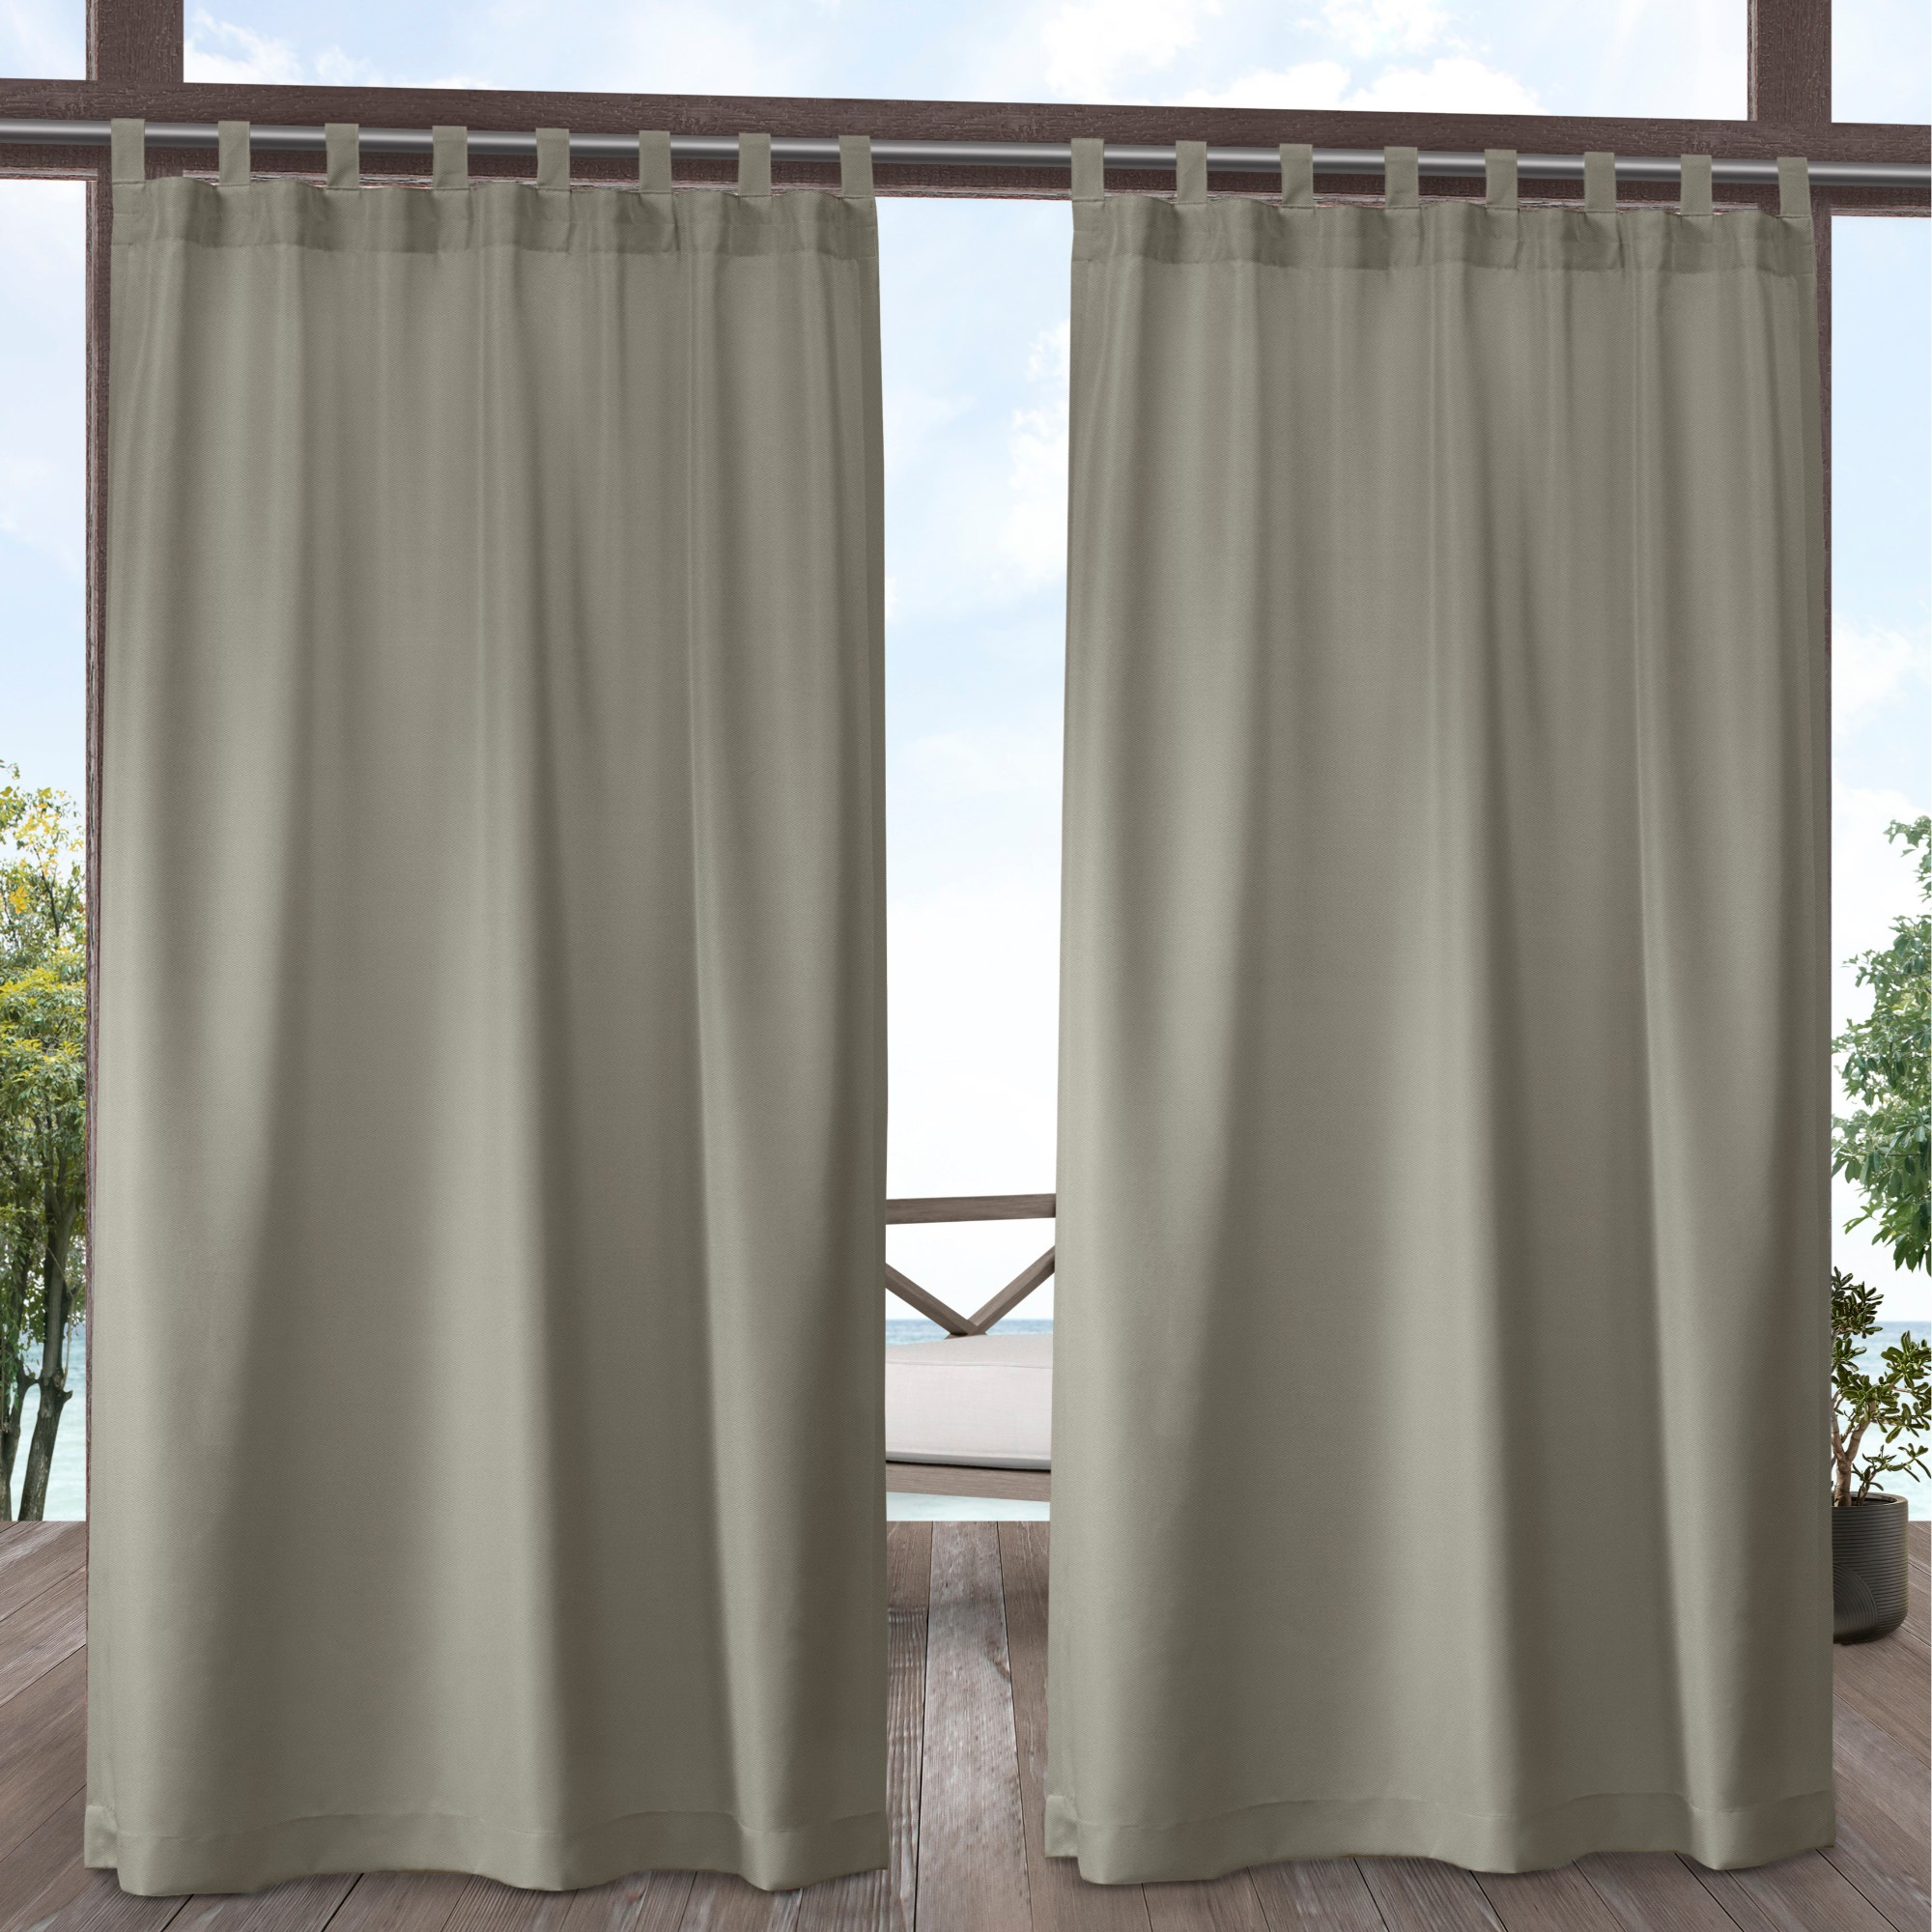 Exclusive Home Curtains 2 Pack Indoor/Outdoor Solid Cabana Tab Top Curtain Panels